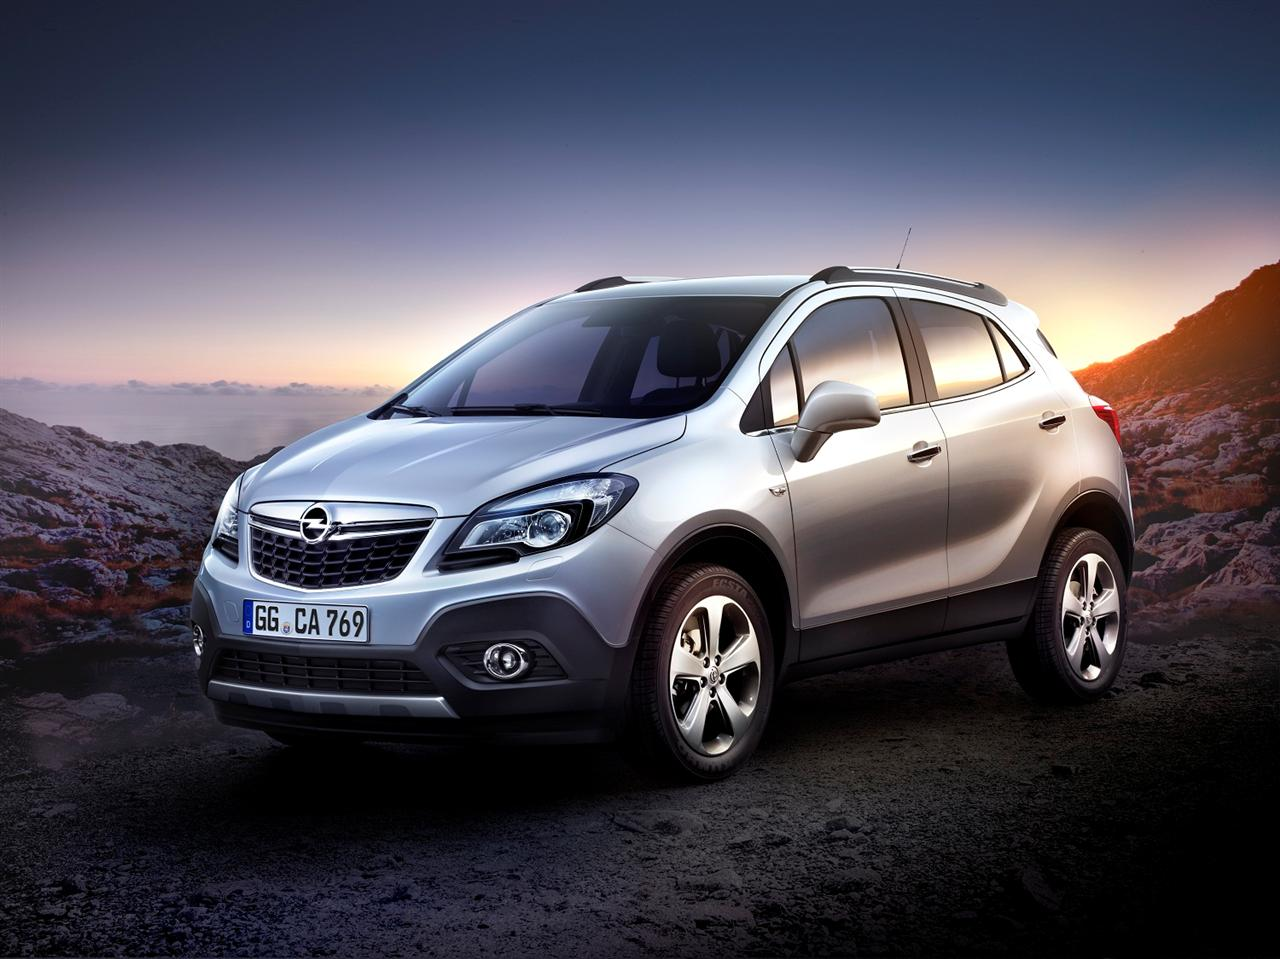 opel mokka is ontzettend deep espresso brown irmscher geeft Wallpapers HD